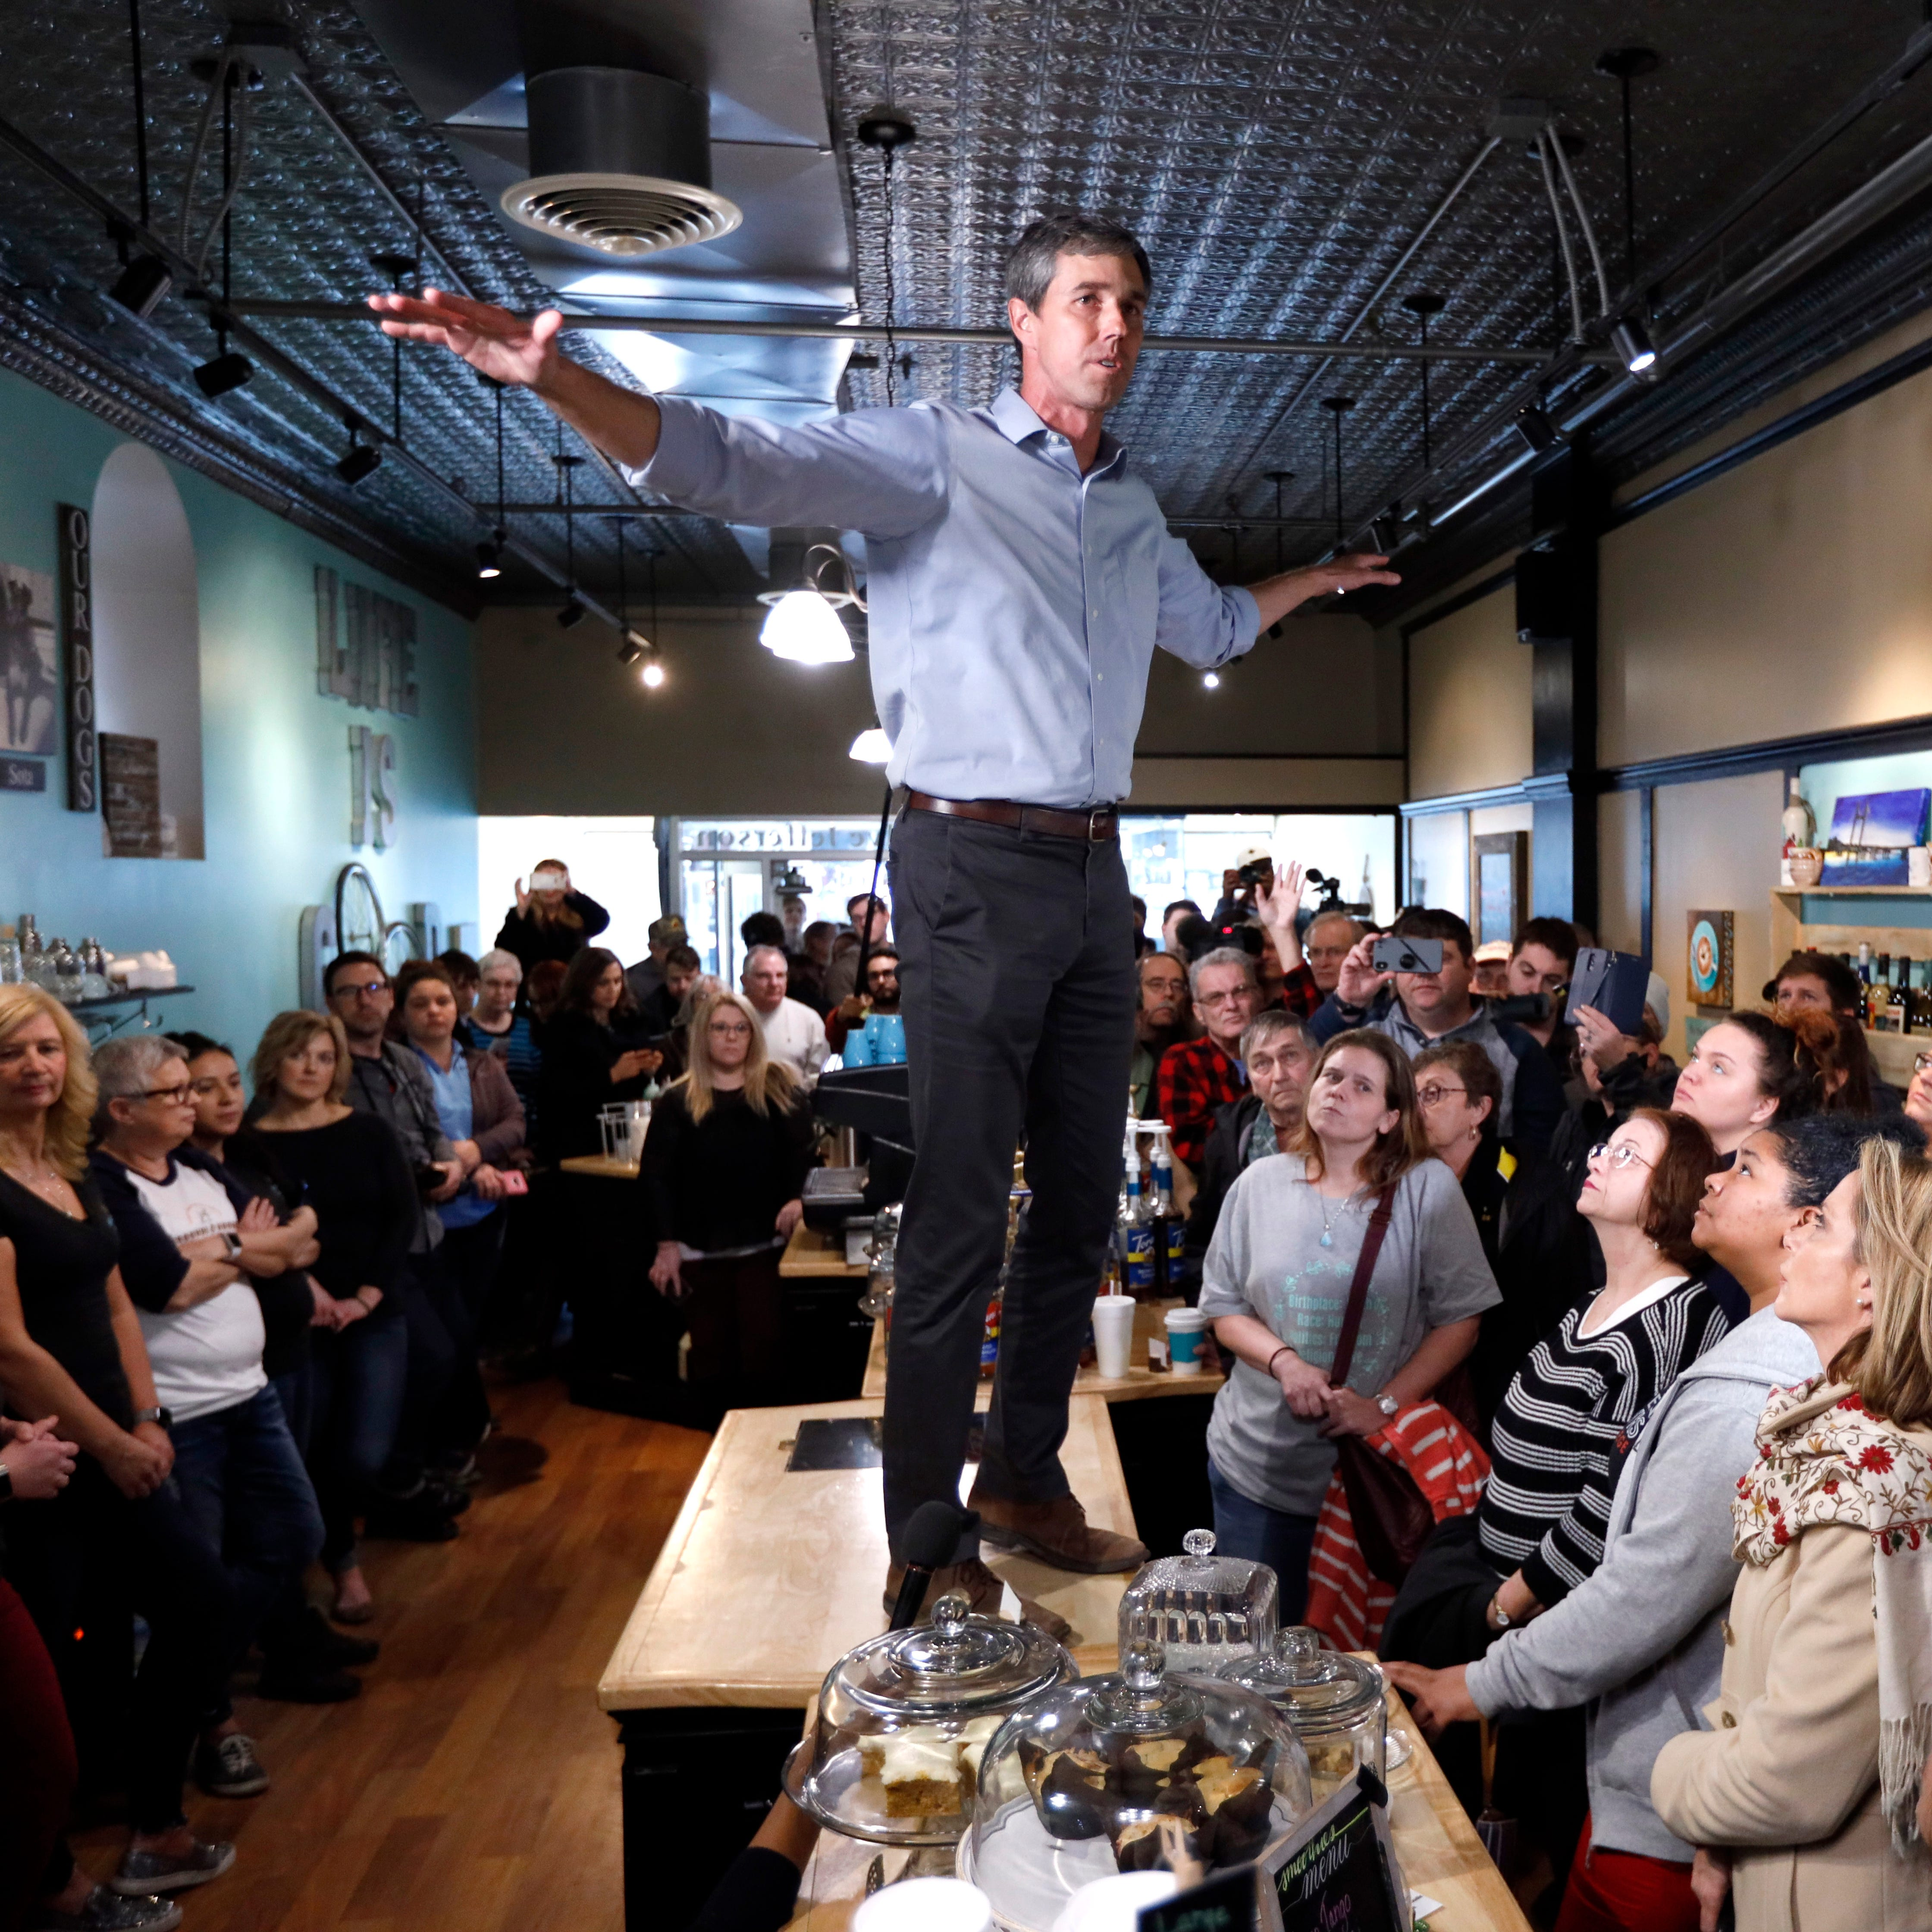 Beto O'Rourke to campaign Monday in Metro Detroit